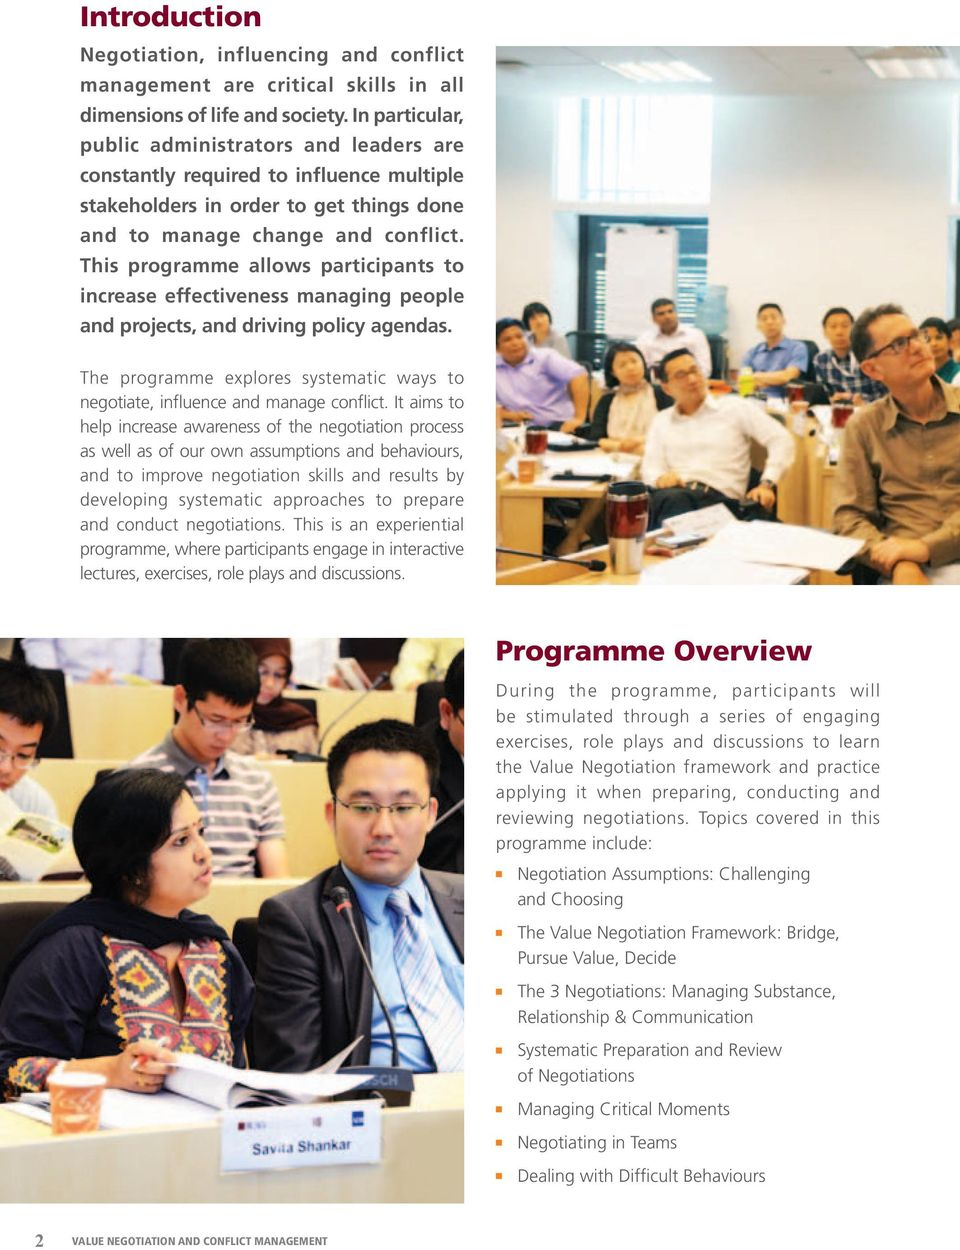 This programme allows participants to increase effectiveness managing people and projects, and driving policy agendas.